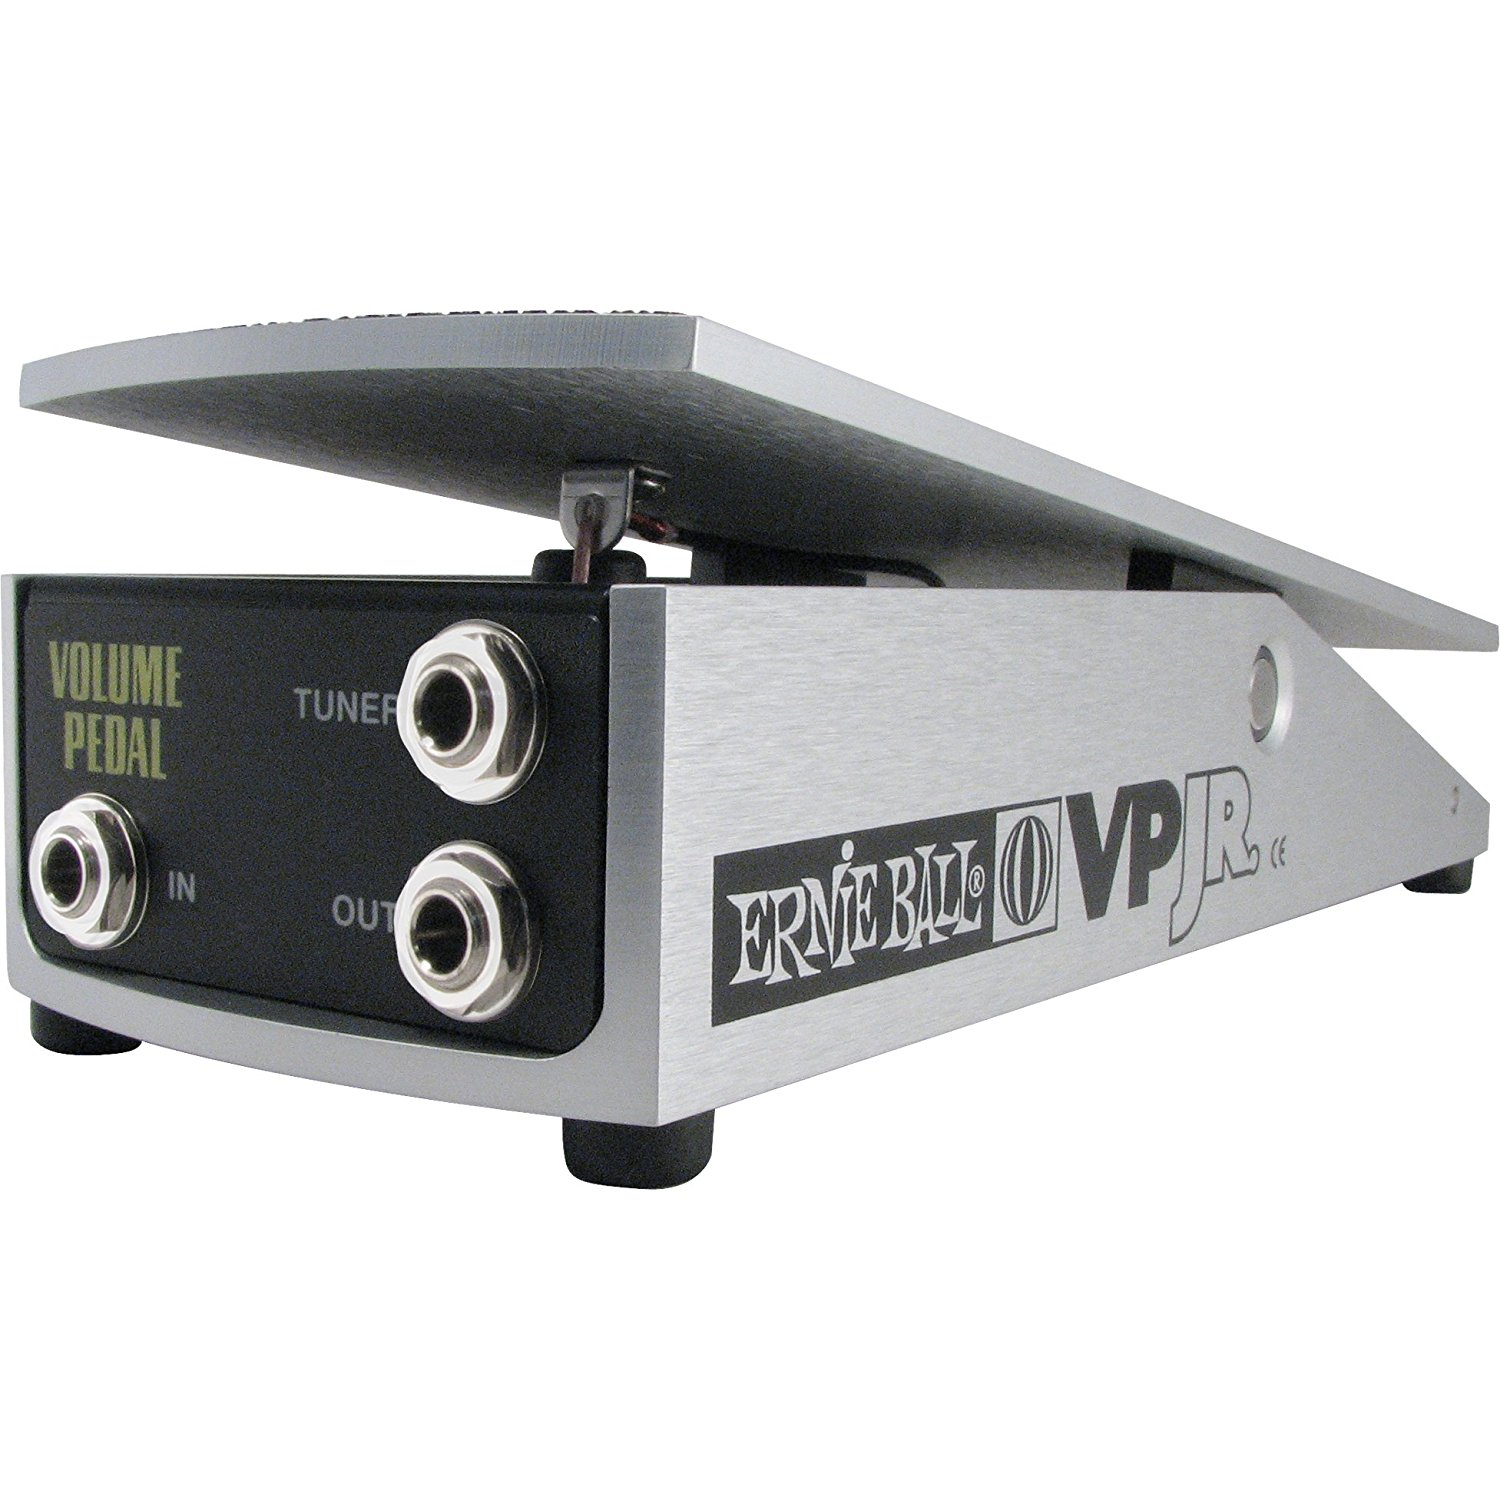 Ernie Ball 6180 VP Jr Size Volume Pedal 250K | Solo Music Gear